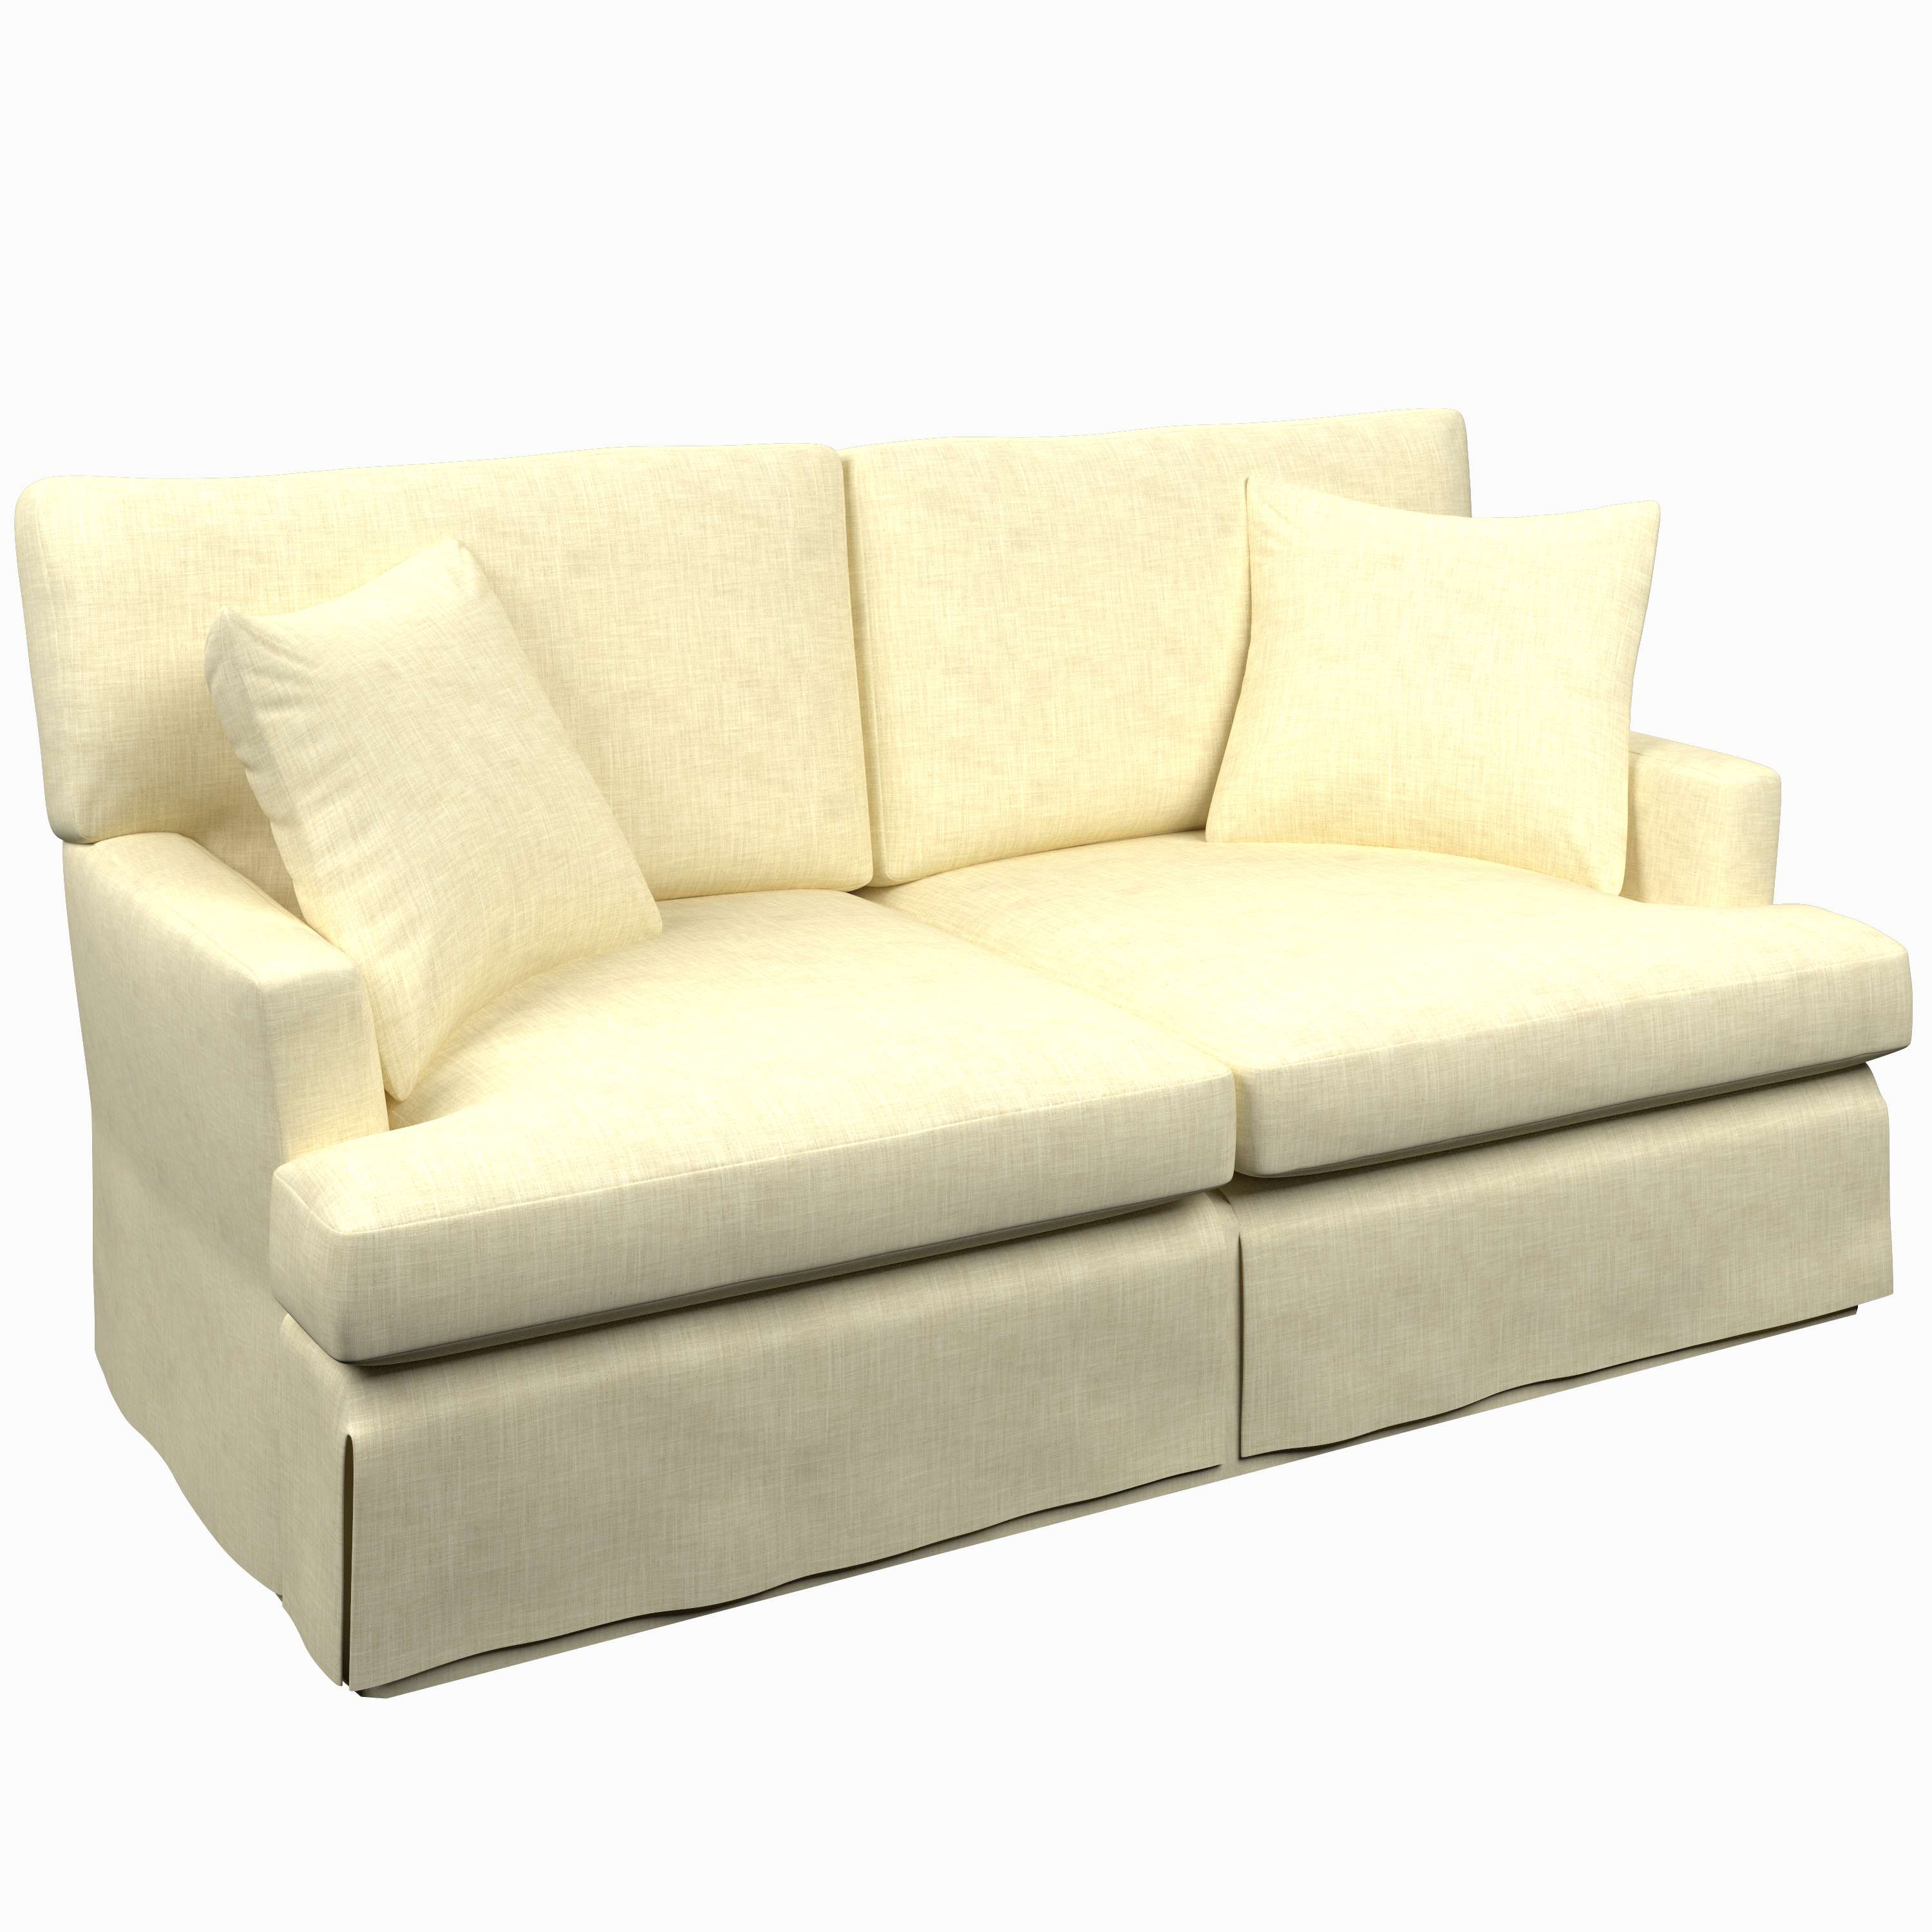 Sofa Outlet Cheshire Greylock Ivory Saybrook 2 Seater Upholstered Sofa Furniture